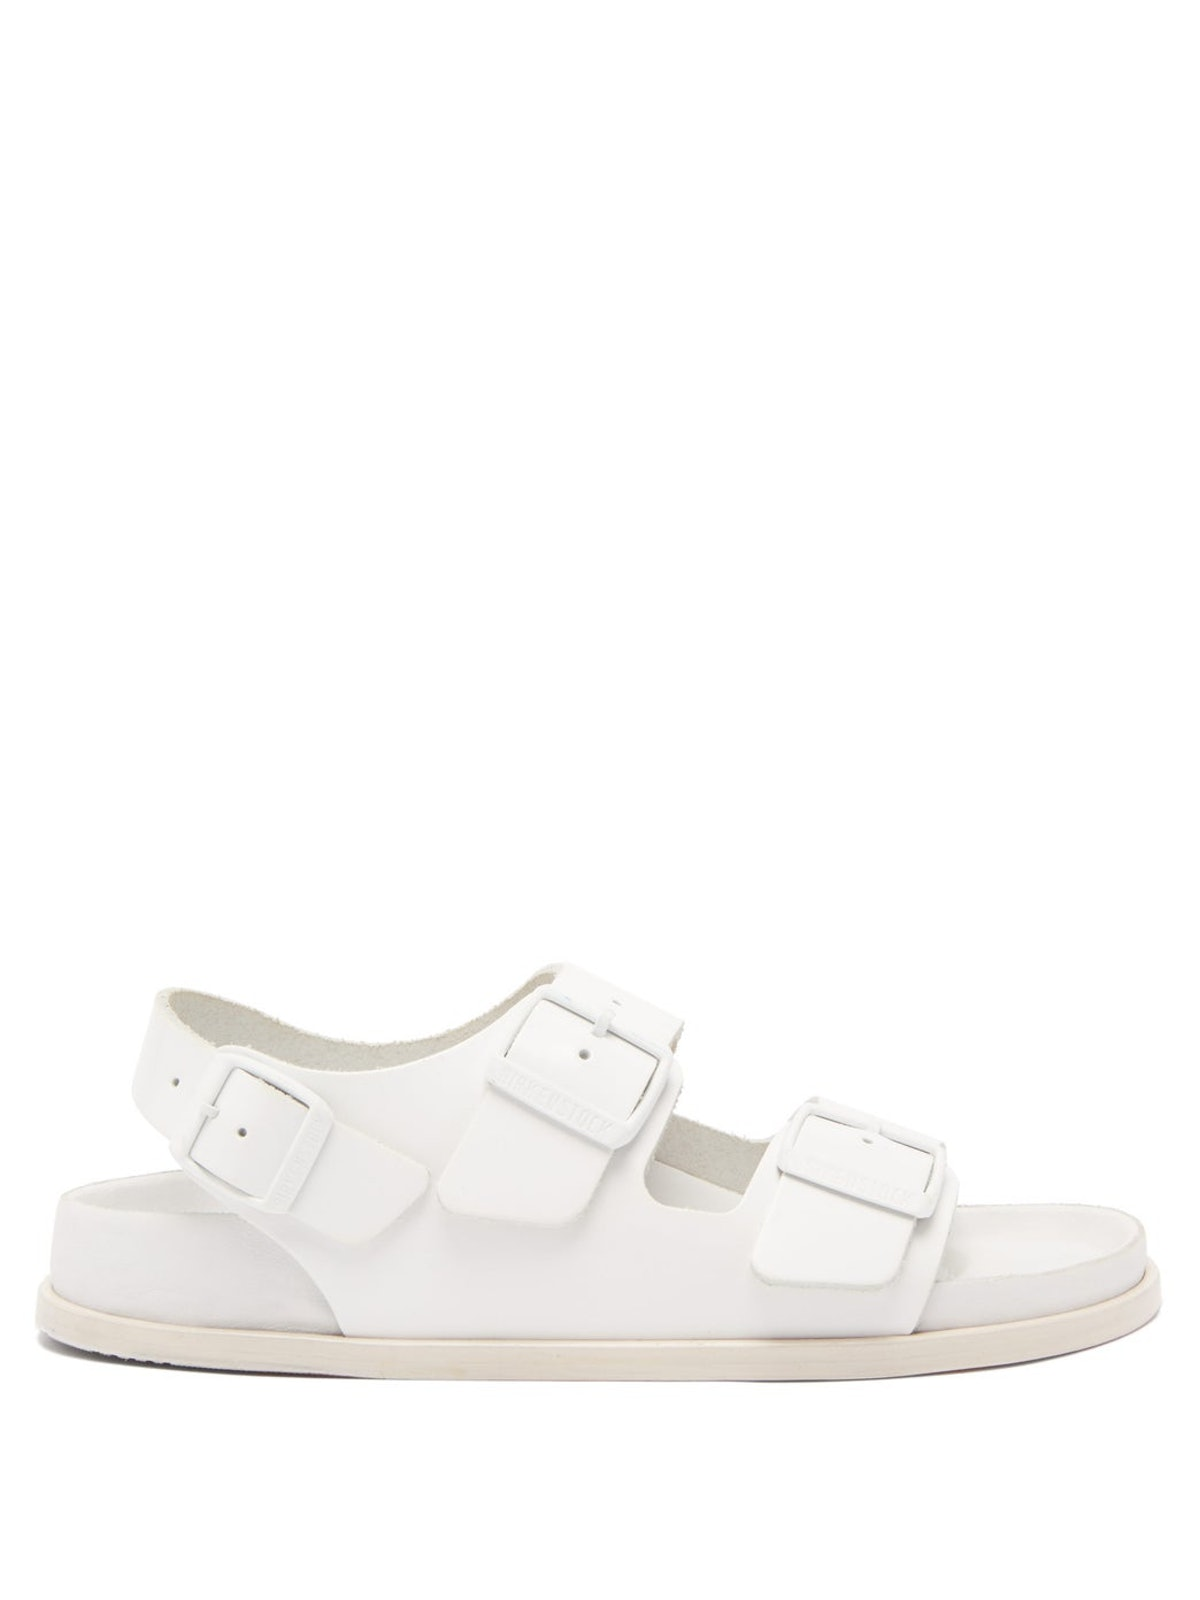 Milano Ankle-Strap Leather Sandals